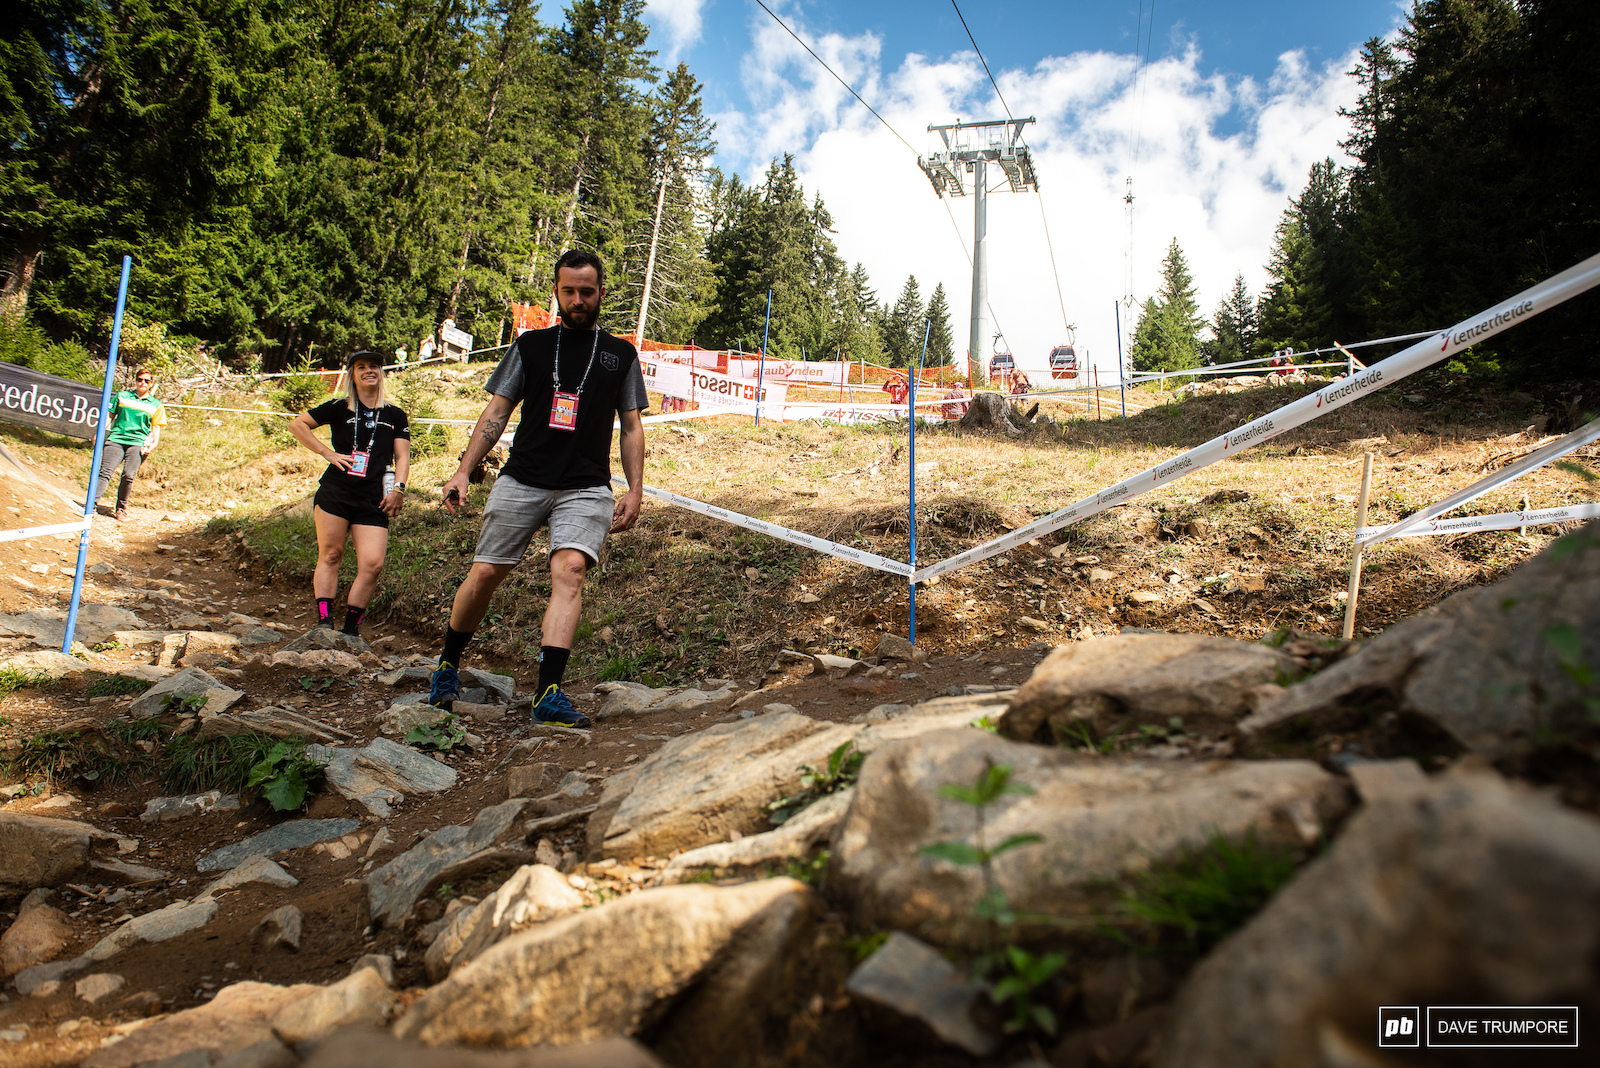 The track in Lenzerheide is getting a bit old and the big rocks are starting to come through in the lower turns.